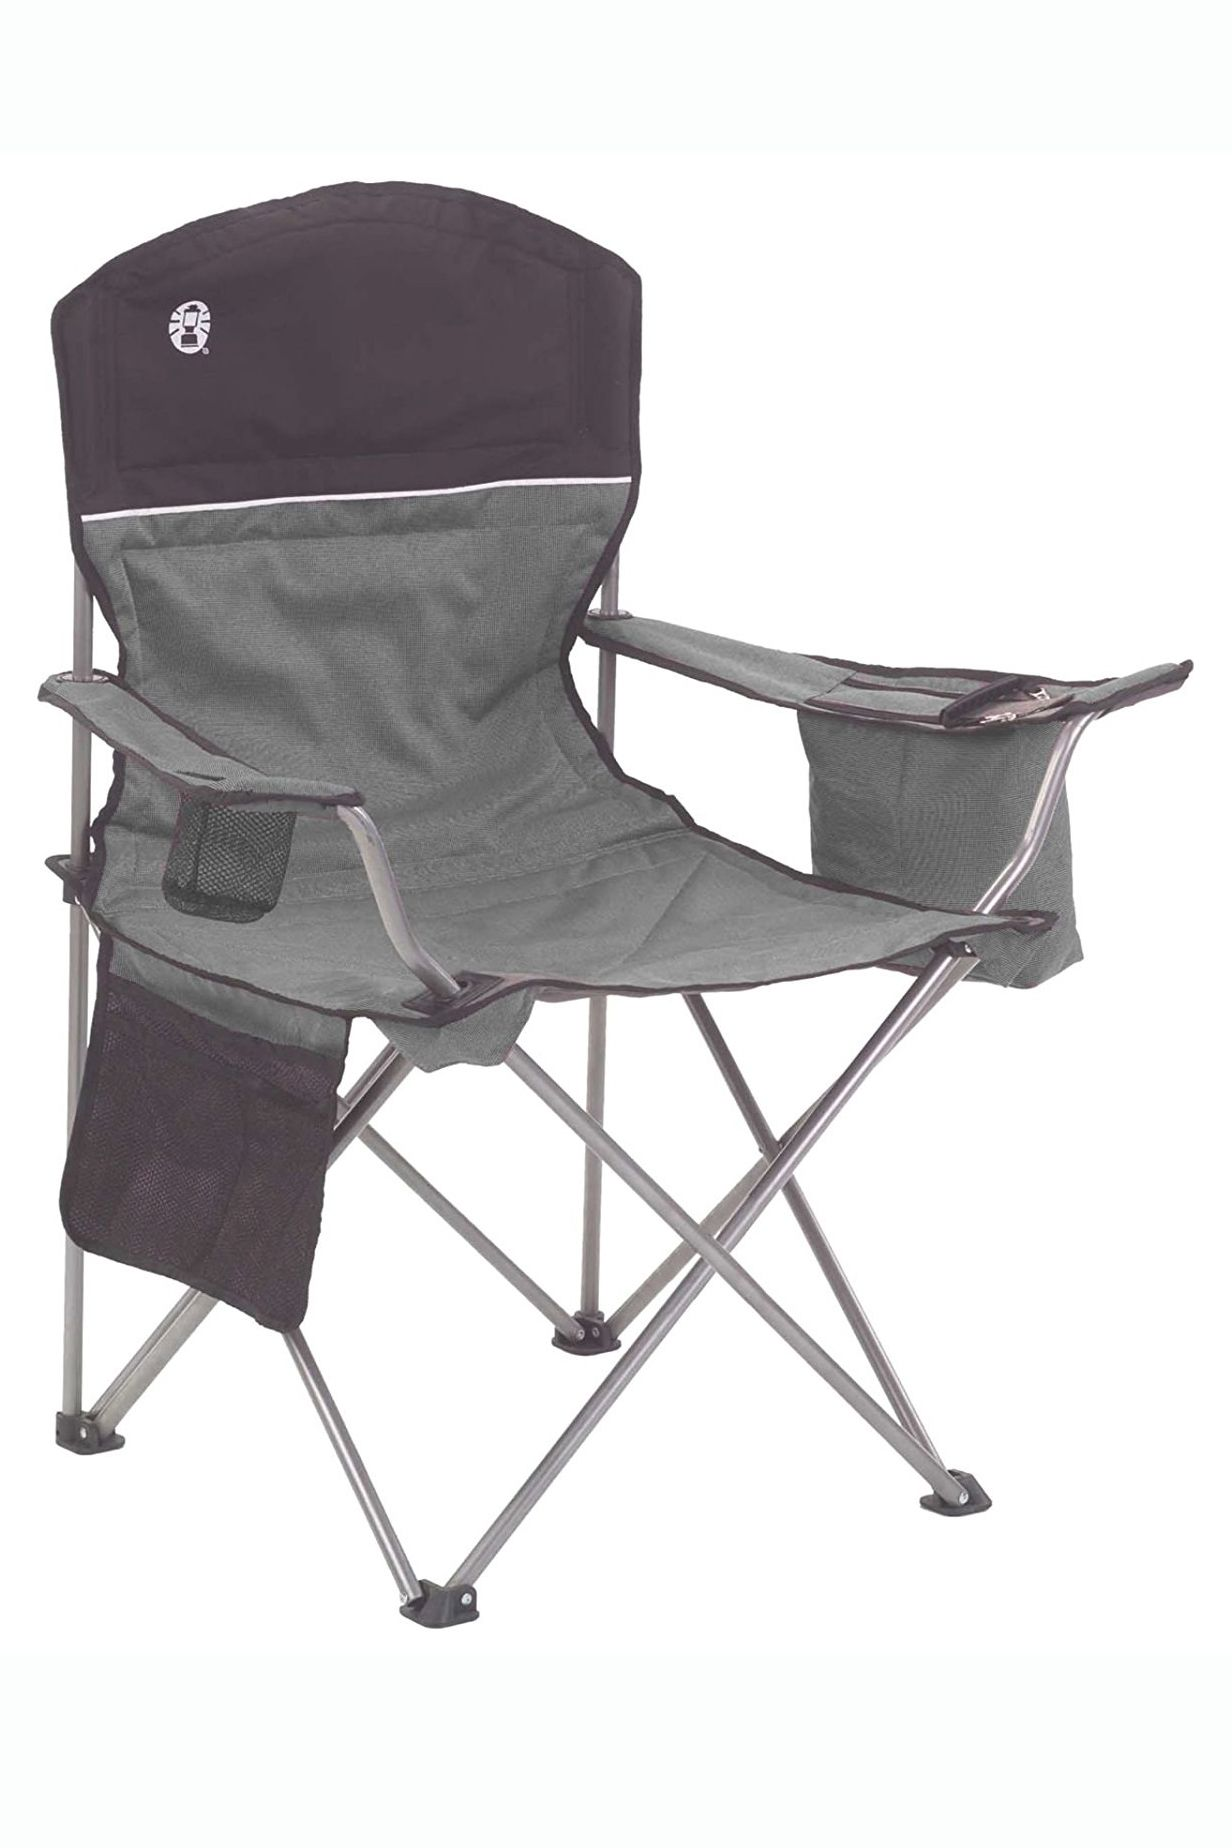 camping gear amazon sale - camping chair